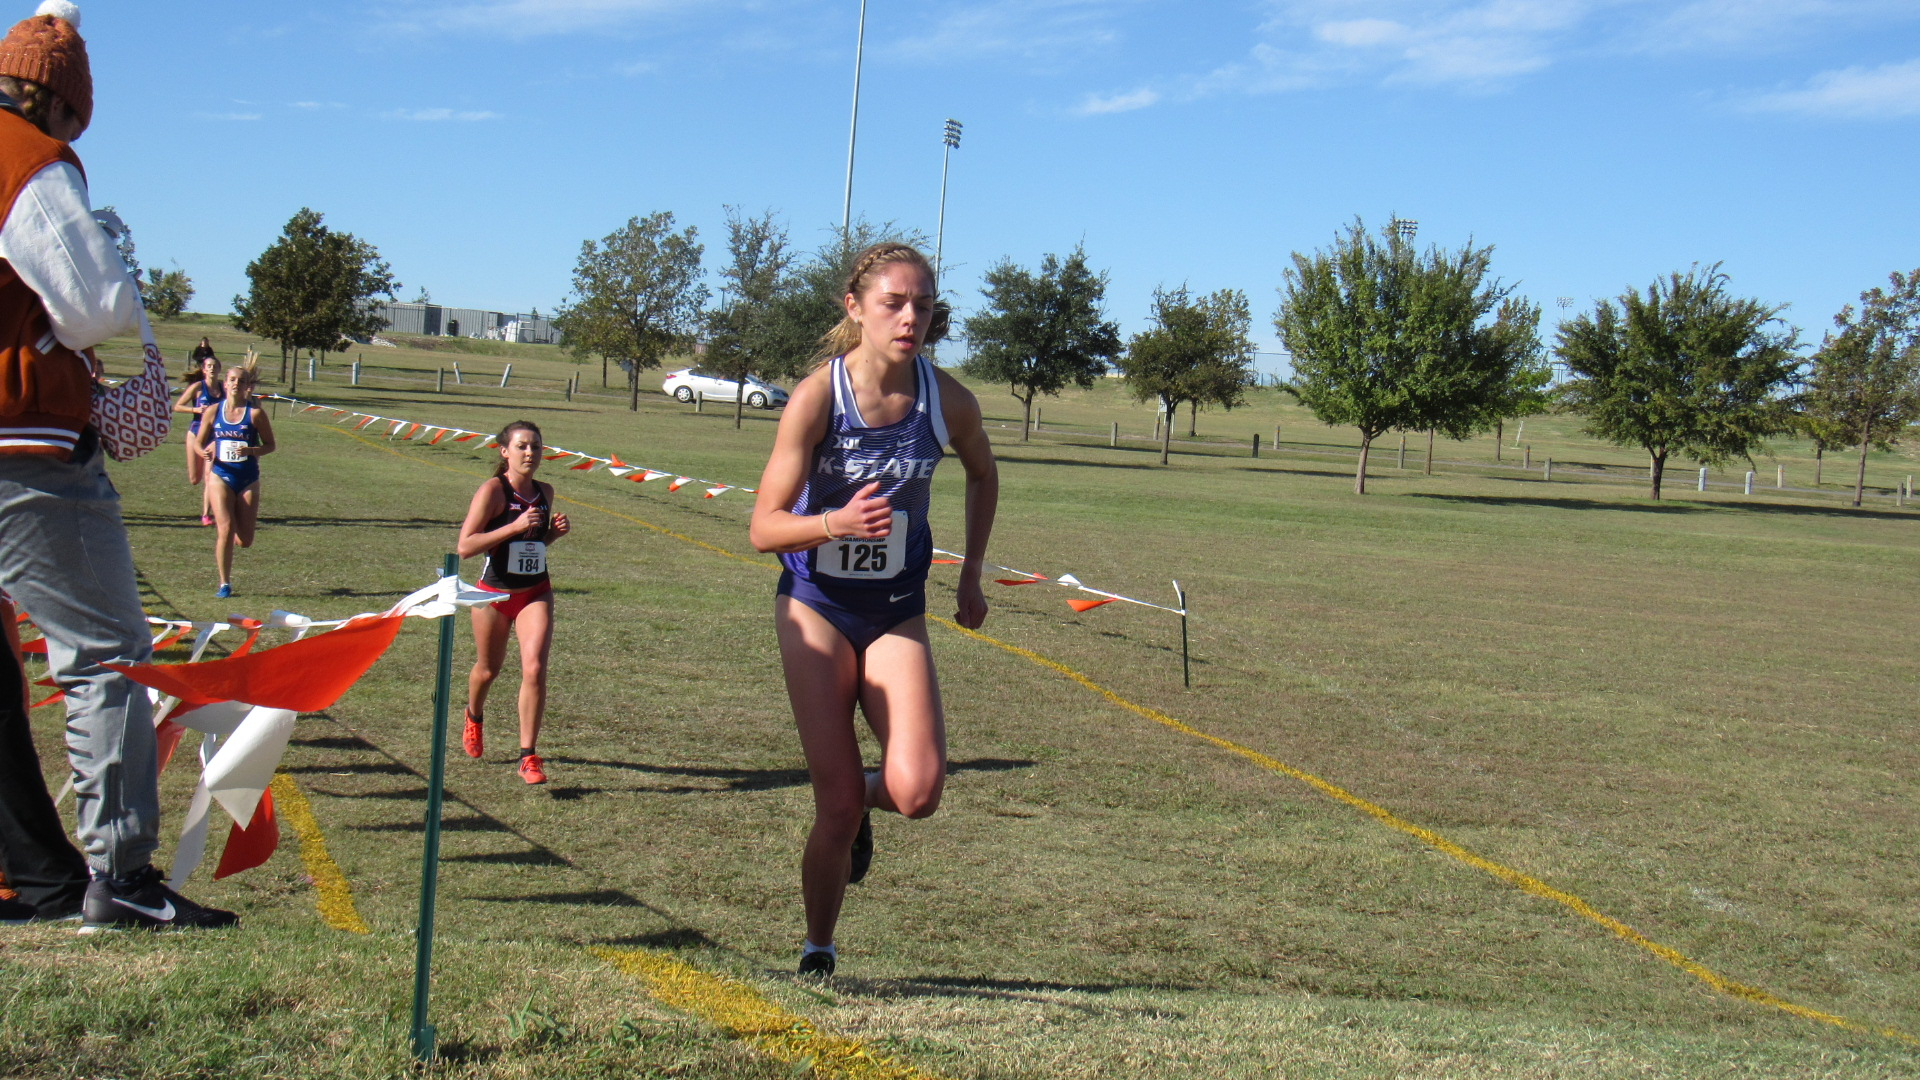 eb5a3fb2e Erin Lee - Cross Country - Kansas State University Athletics